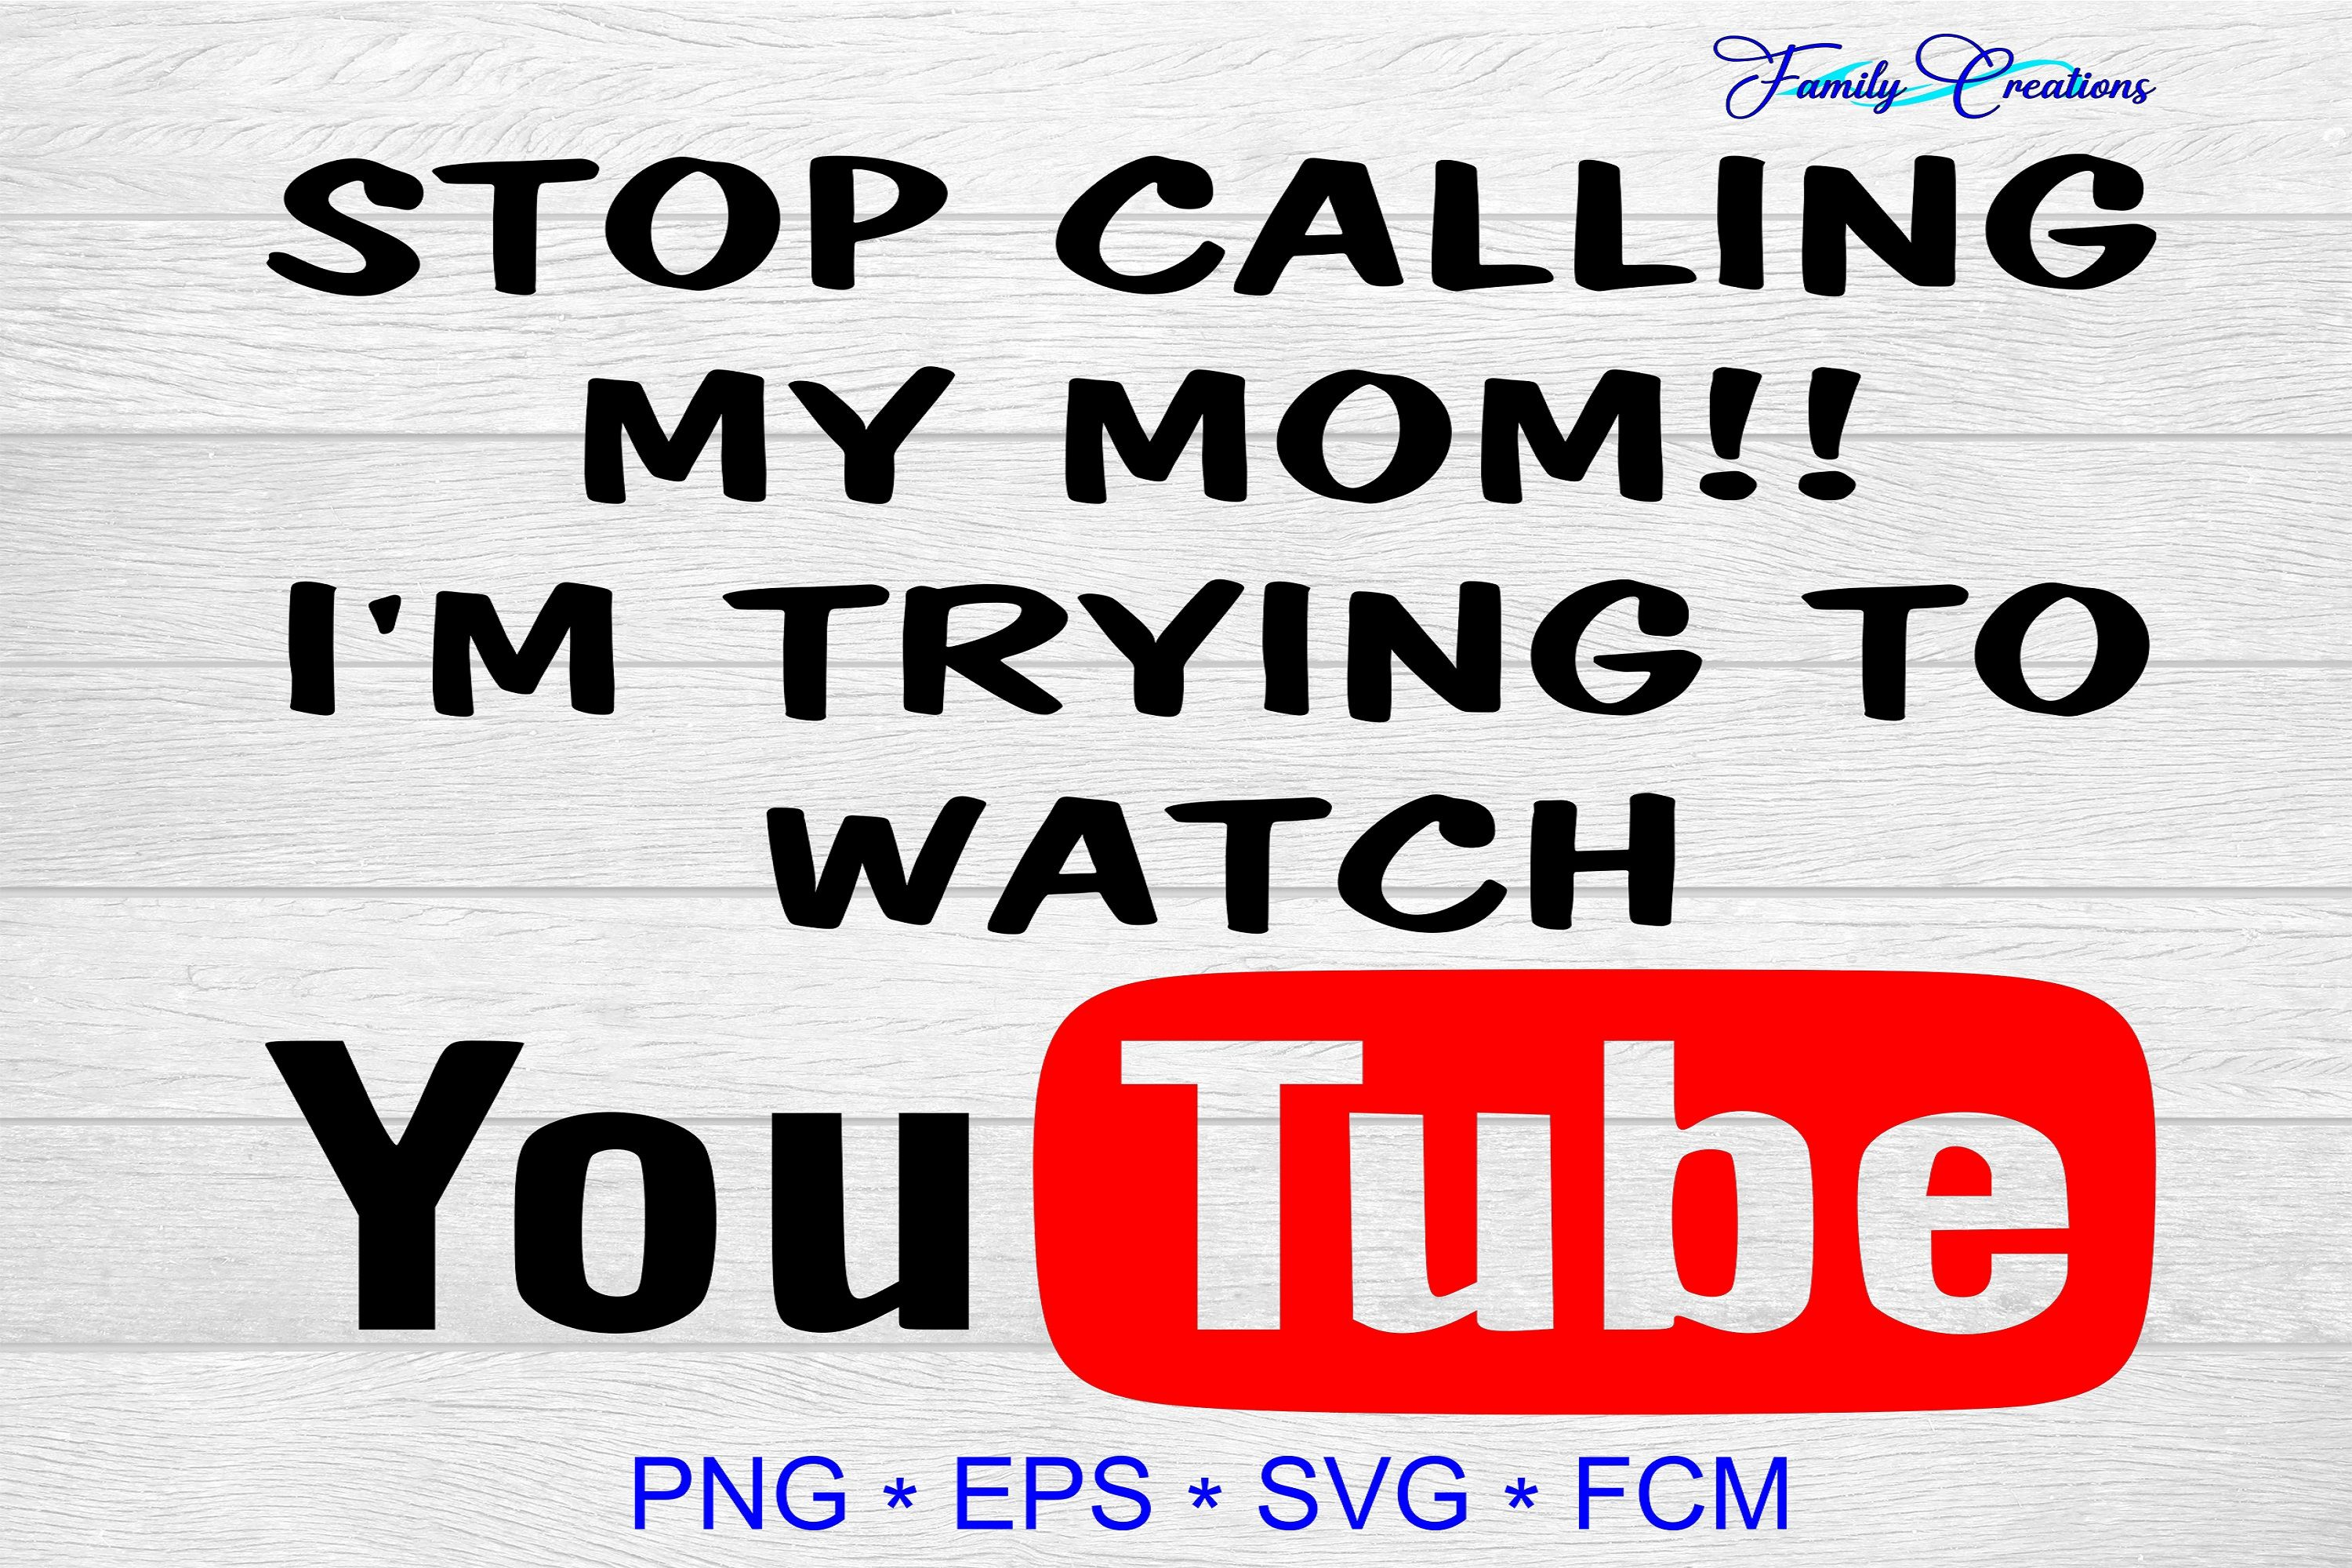 Stop Calling My Mom! I Watching Youtube (Graphic) by